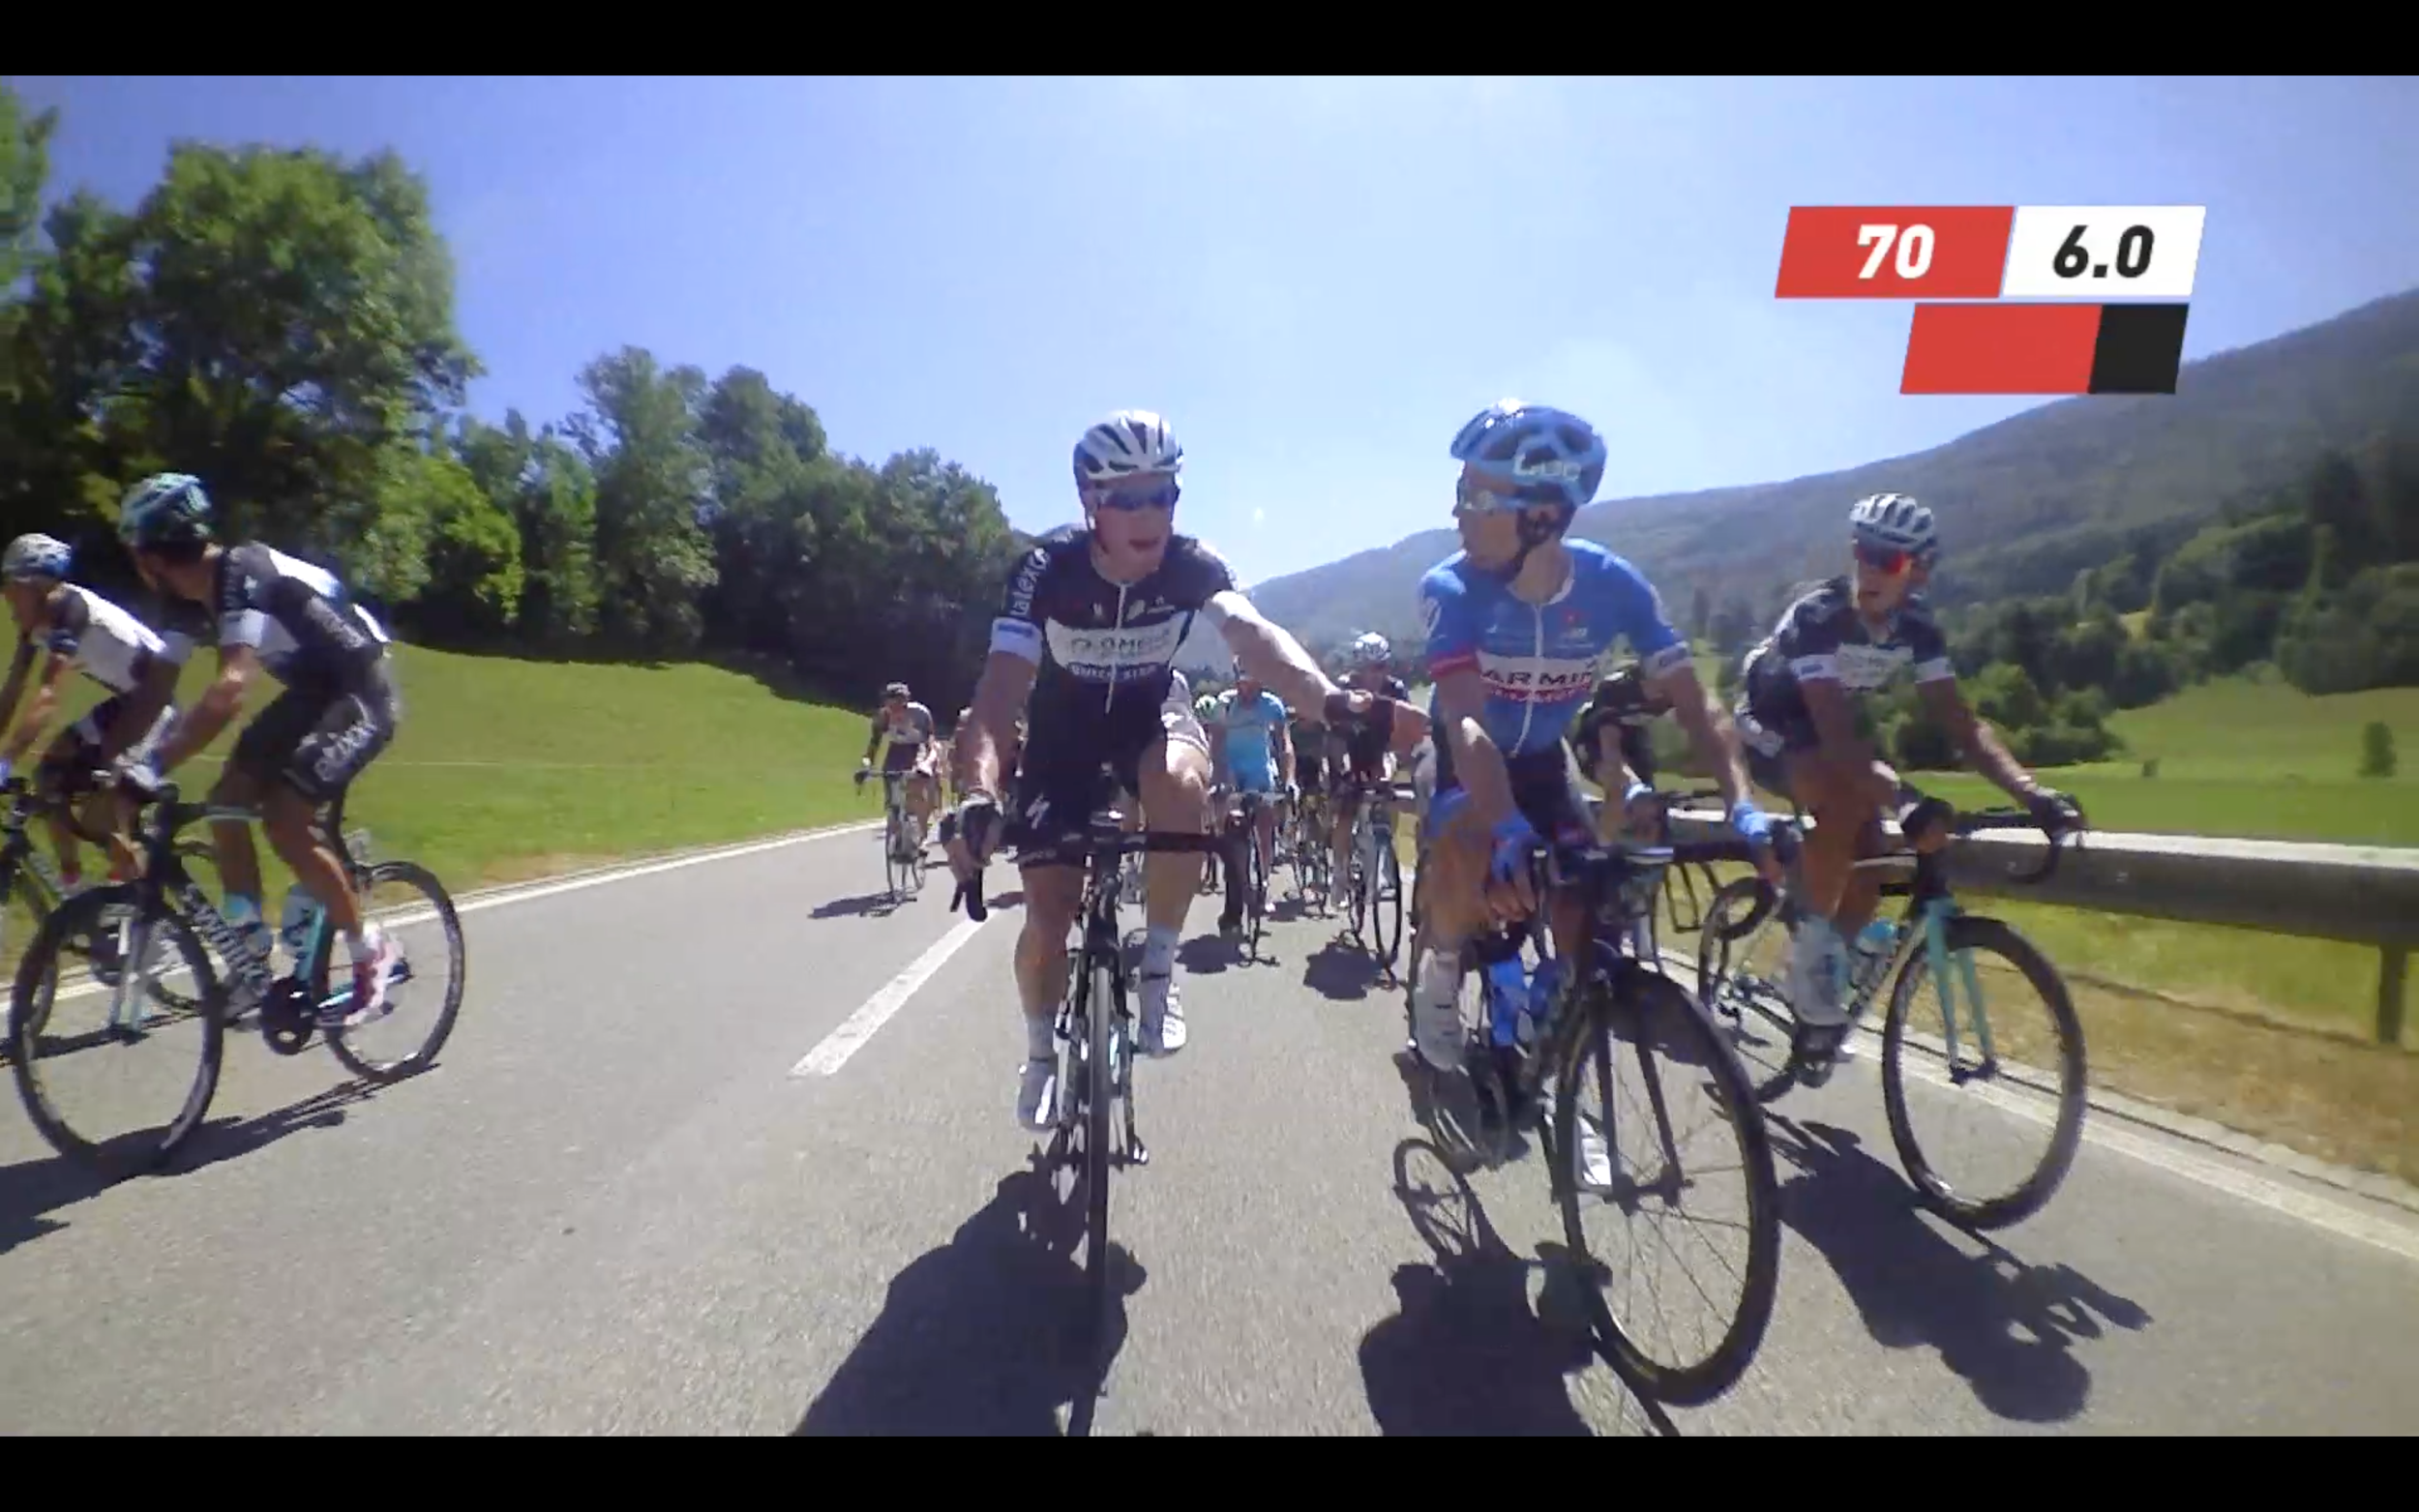 One of two instances in the video with peloton arguments.